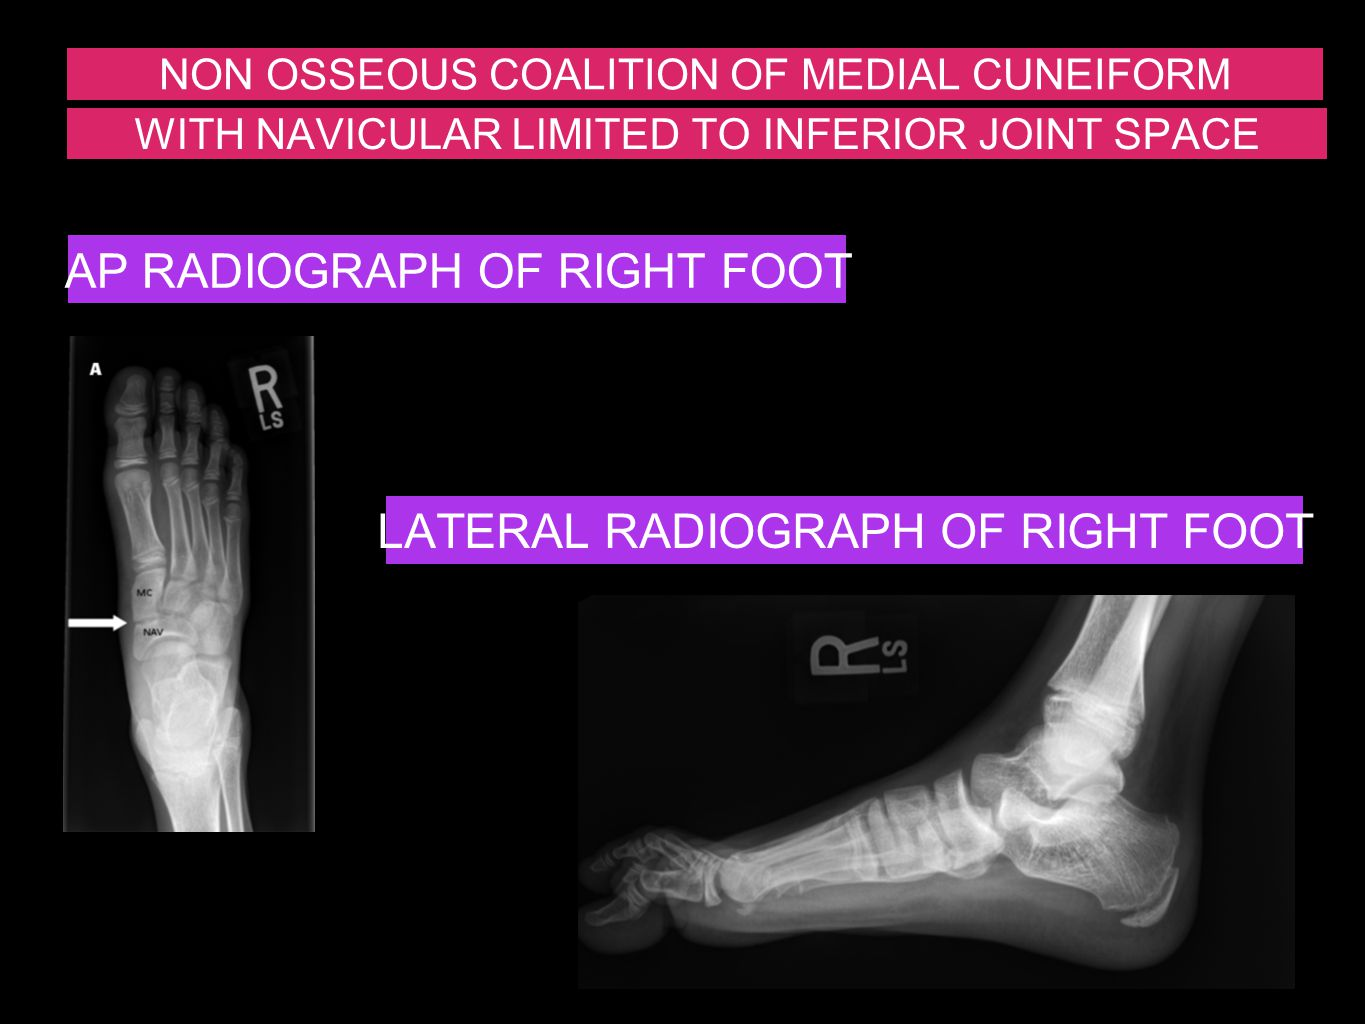 AP RADIOGRAPH OF RIGHT FOOT